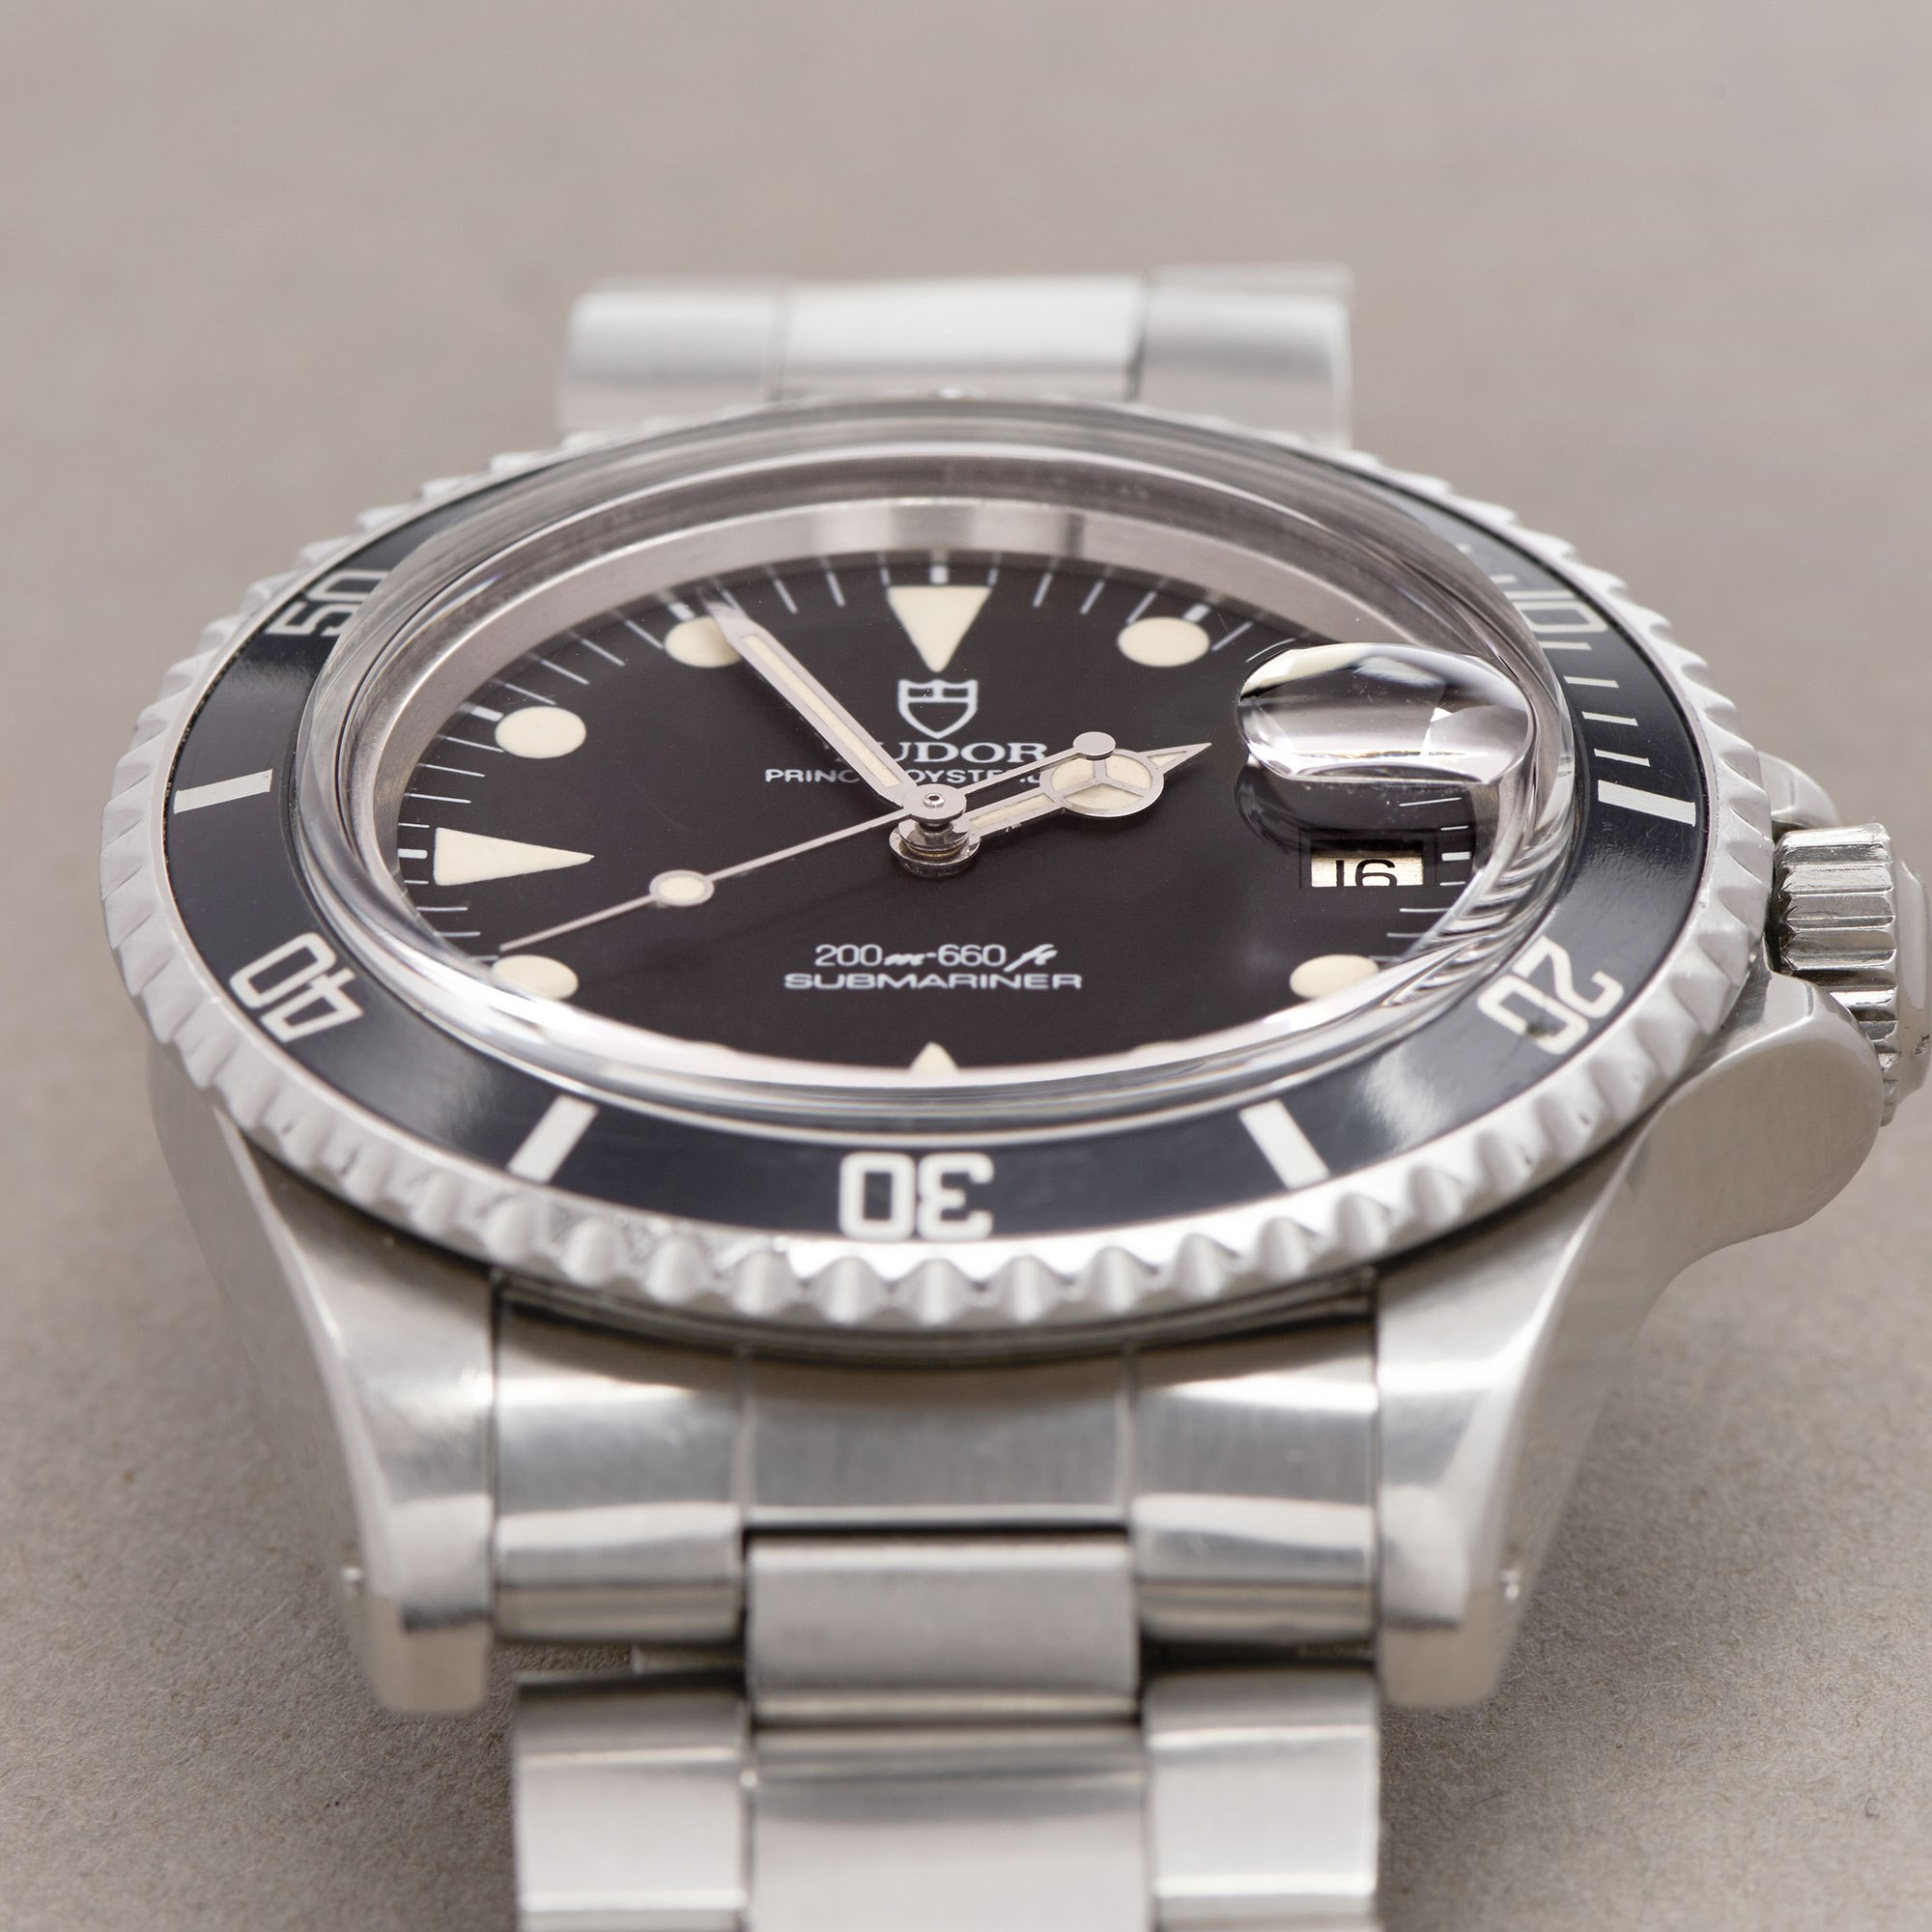 Tudor Submariner Date Meters First Roestvrij Staal 76100